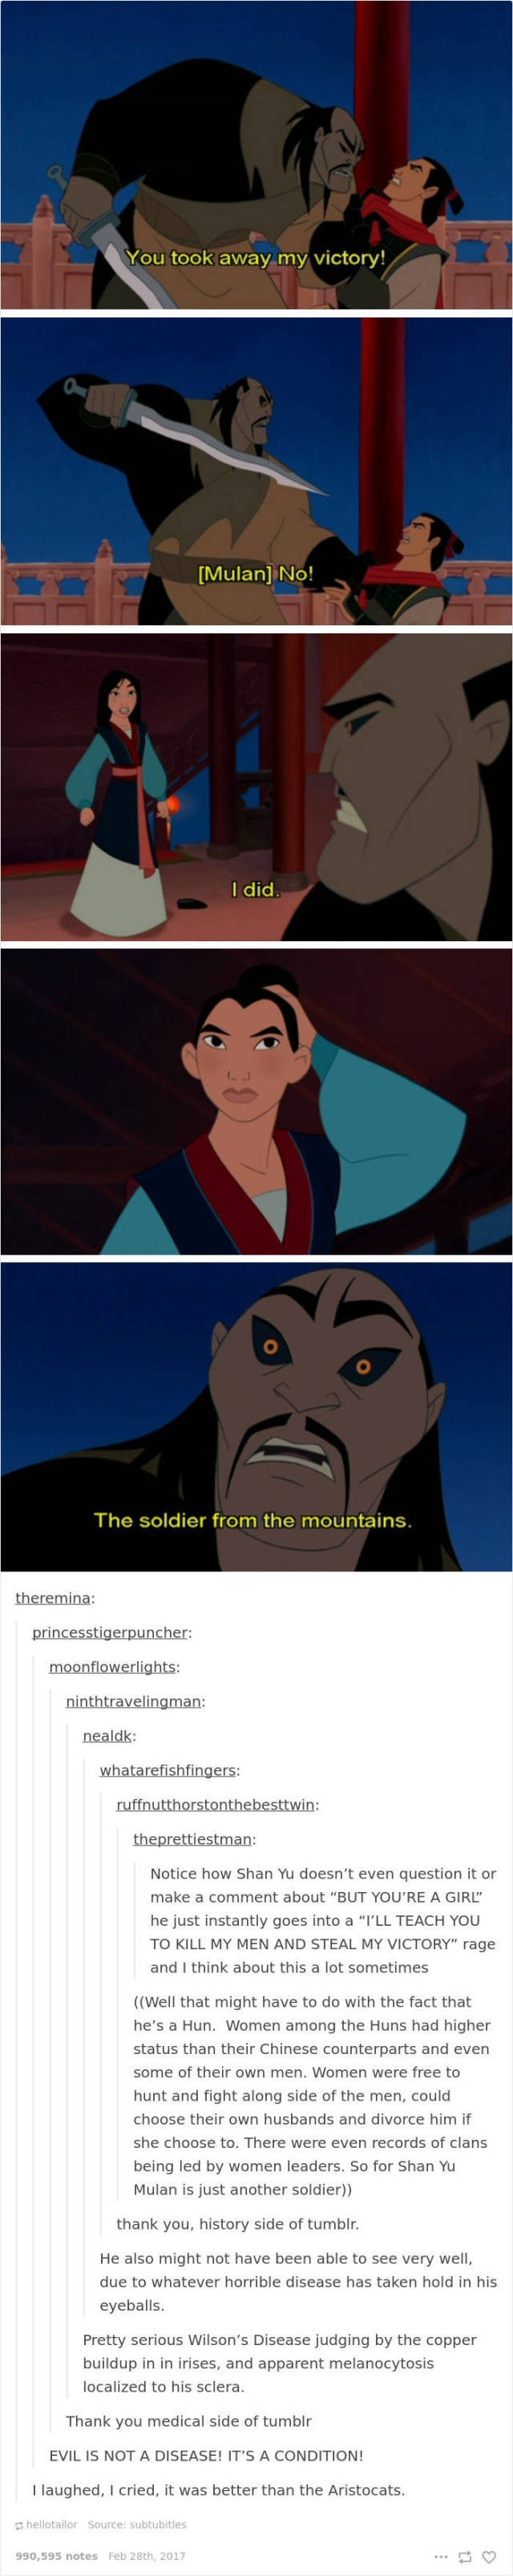 """Cartoon - You took away my victory! [Mulan] No! I did The soldier from the mountains. theremina: princesstigerpuncher: moonflowerlights: ninthtravelingman: nealdk: whatarefishfingers: ruffnutthorstonthebesttwin: theprettiestman: Notice how Shan Yu doesn't even question it or make a comment about """"BUT YOU'RE A GIRL"""" he just instantly goes into a """"I'LL TEACH YOU TO KILL MY MEN AND STEAL MY VICTORY"""" rage and I think about this a lot sometimes ((Well that might have to do with the fact that he's a H"""